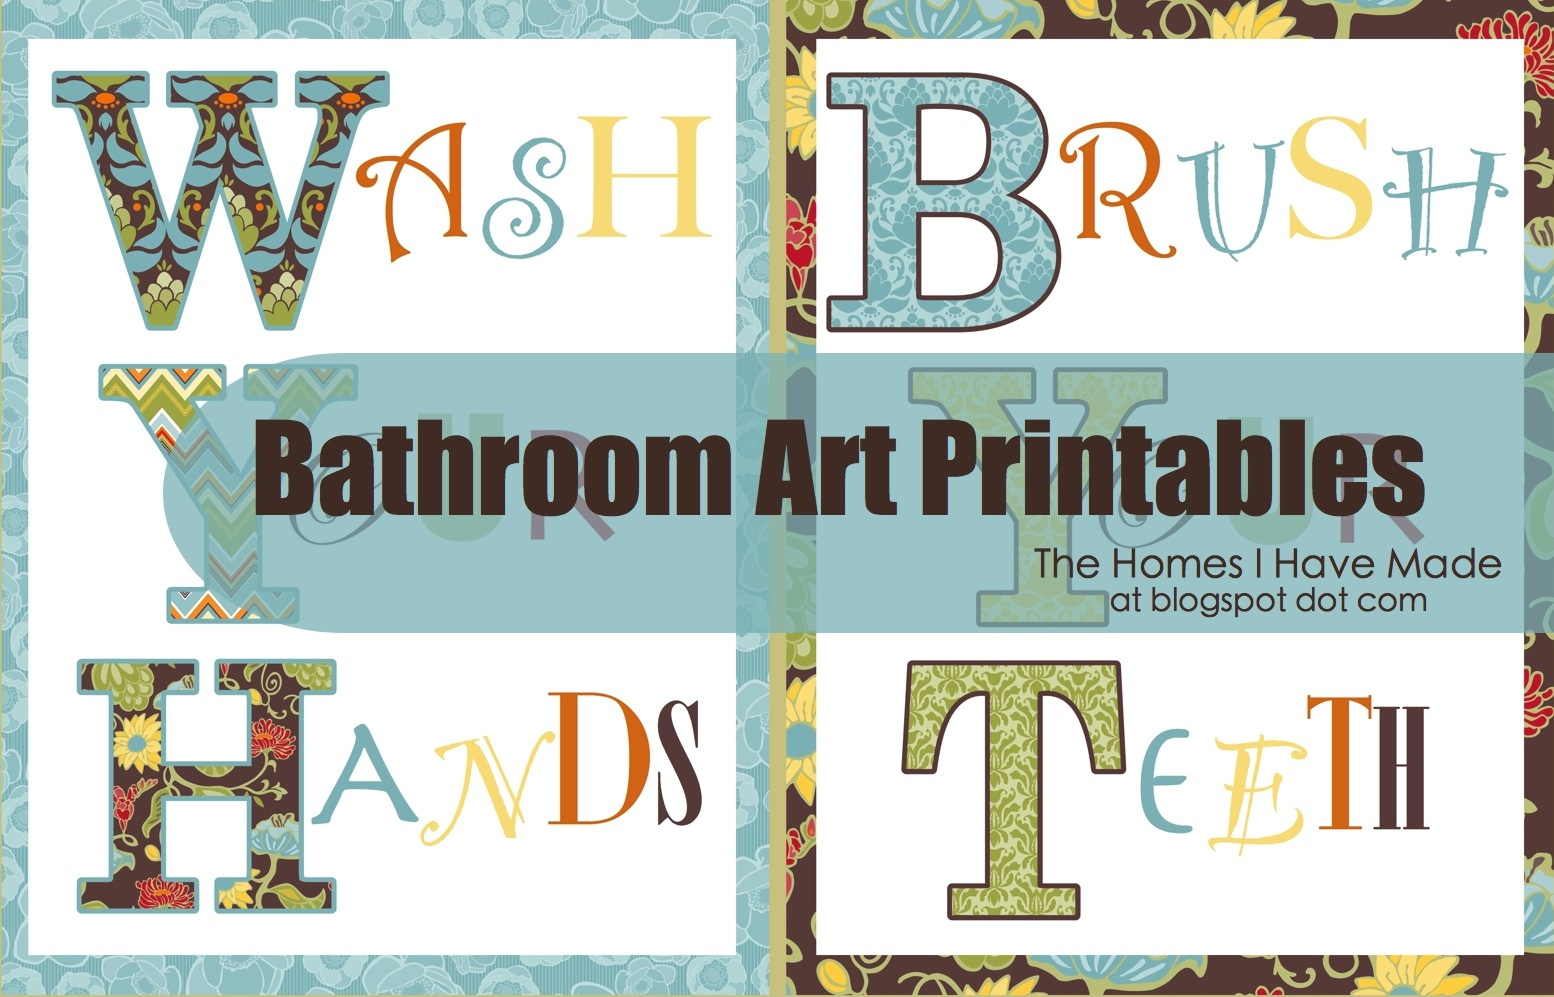 Bathroom Wall Art Printables | The Homes I Have Made - Free Printable Wall Art For Bathroom